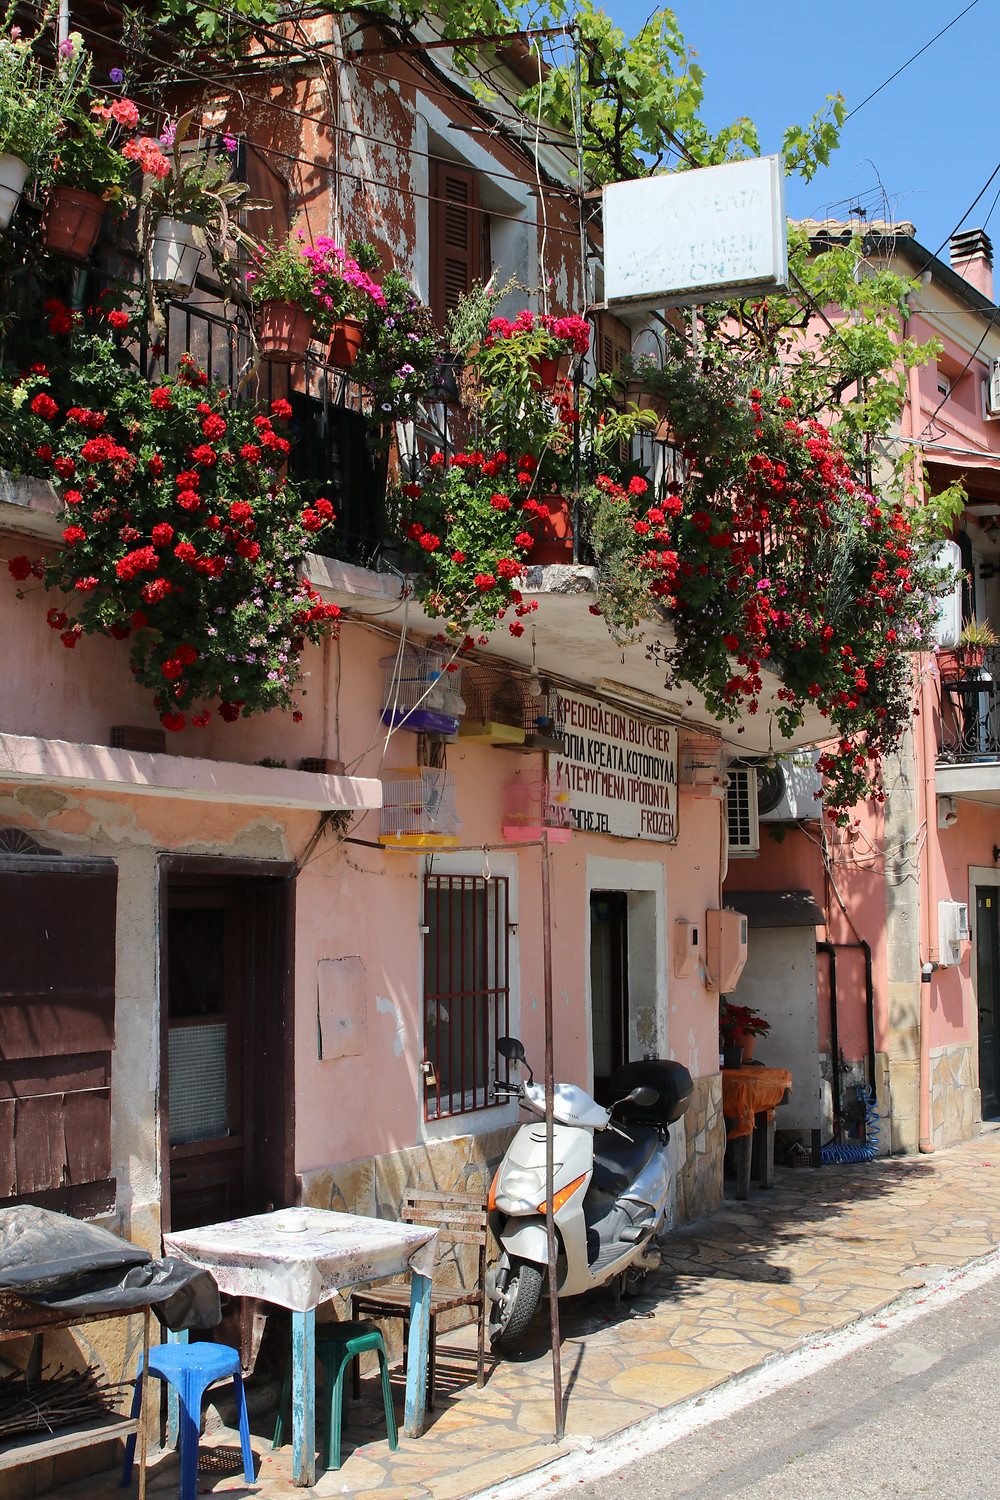 House in Sinarades, Corfu, full of red flowers